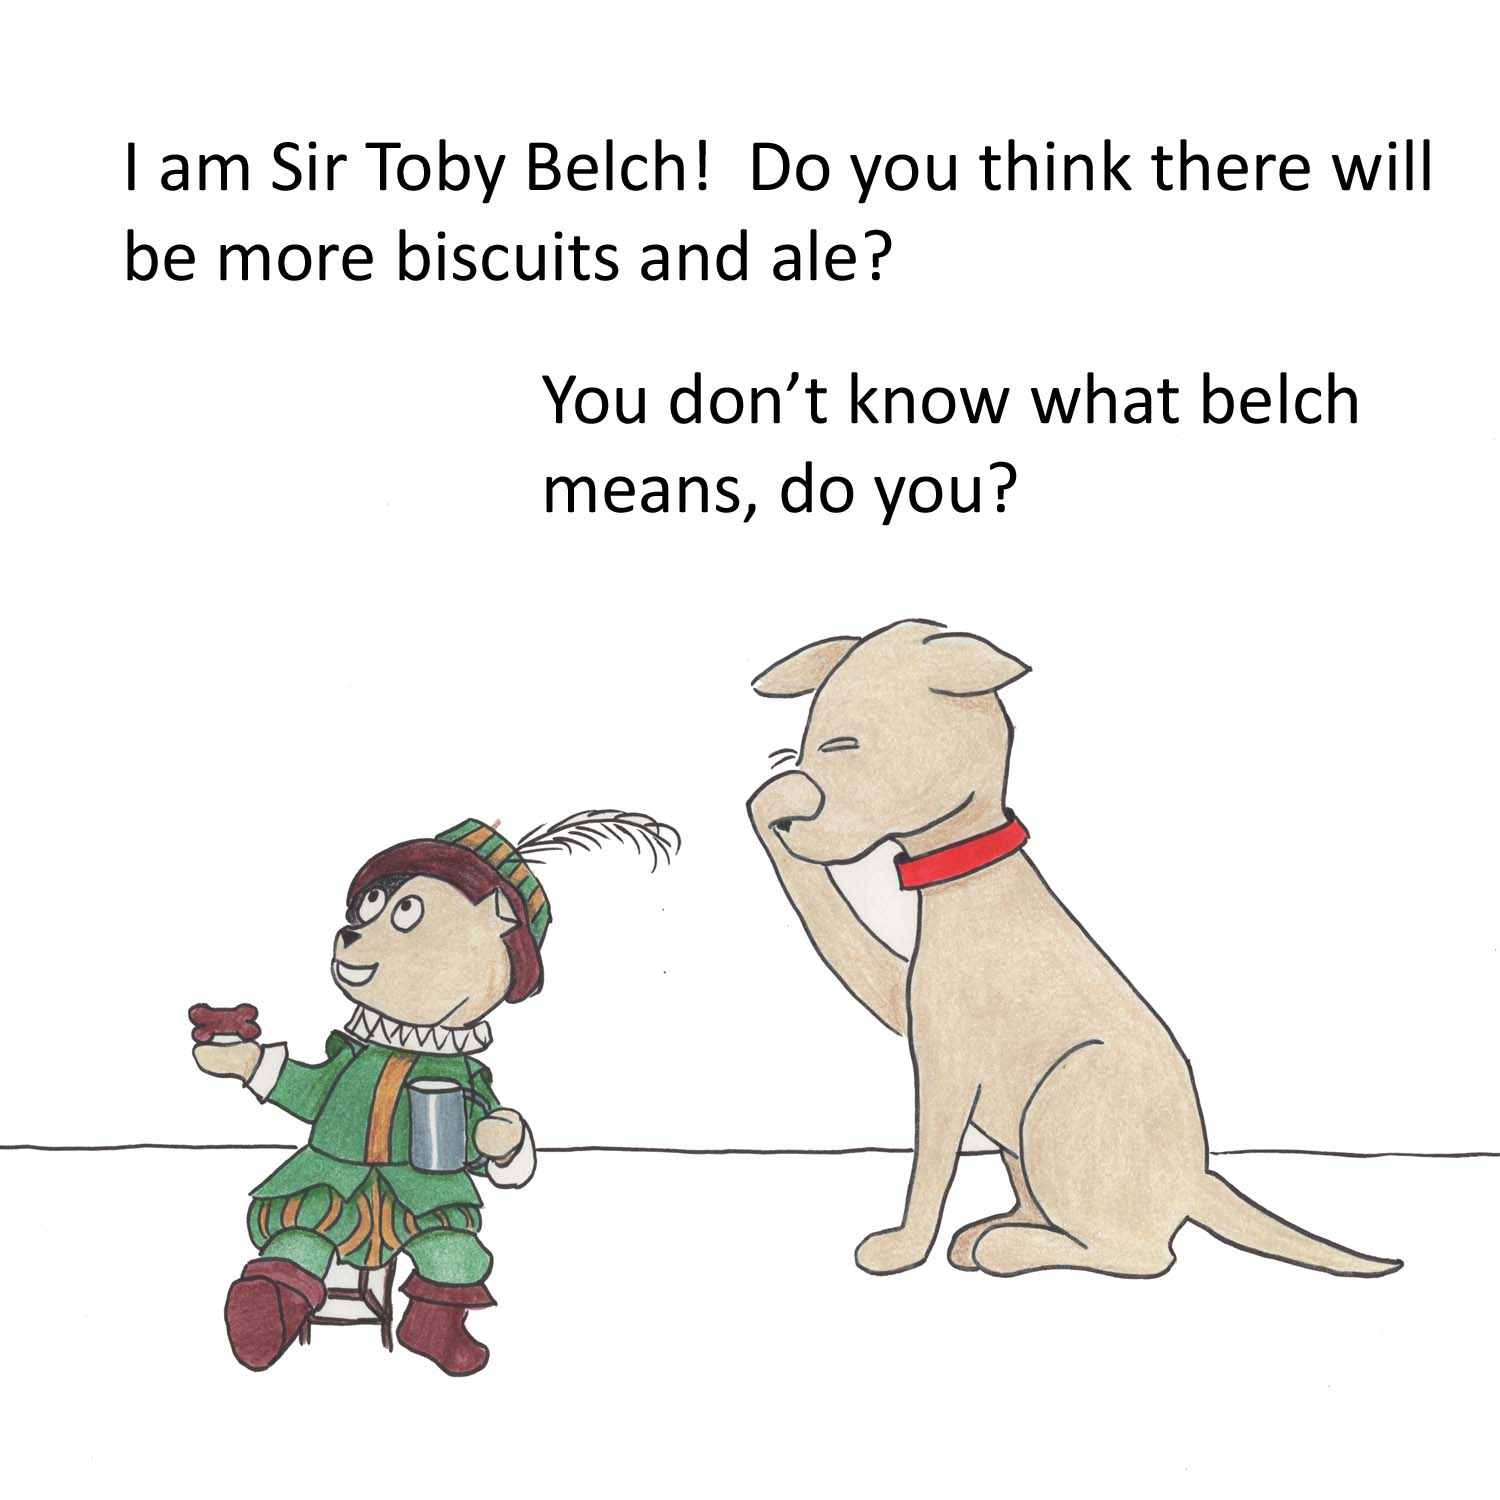 I am Sir Toby Belch! Do you think there will be more biscuits and ale? You don't know what belch means, do you?